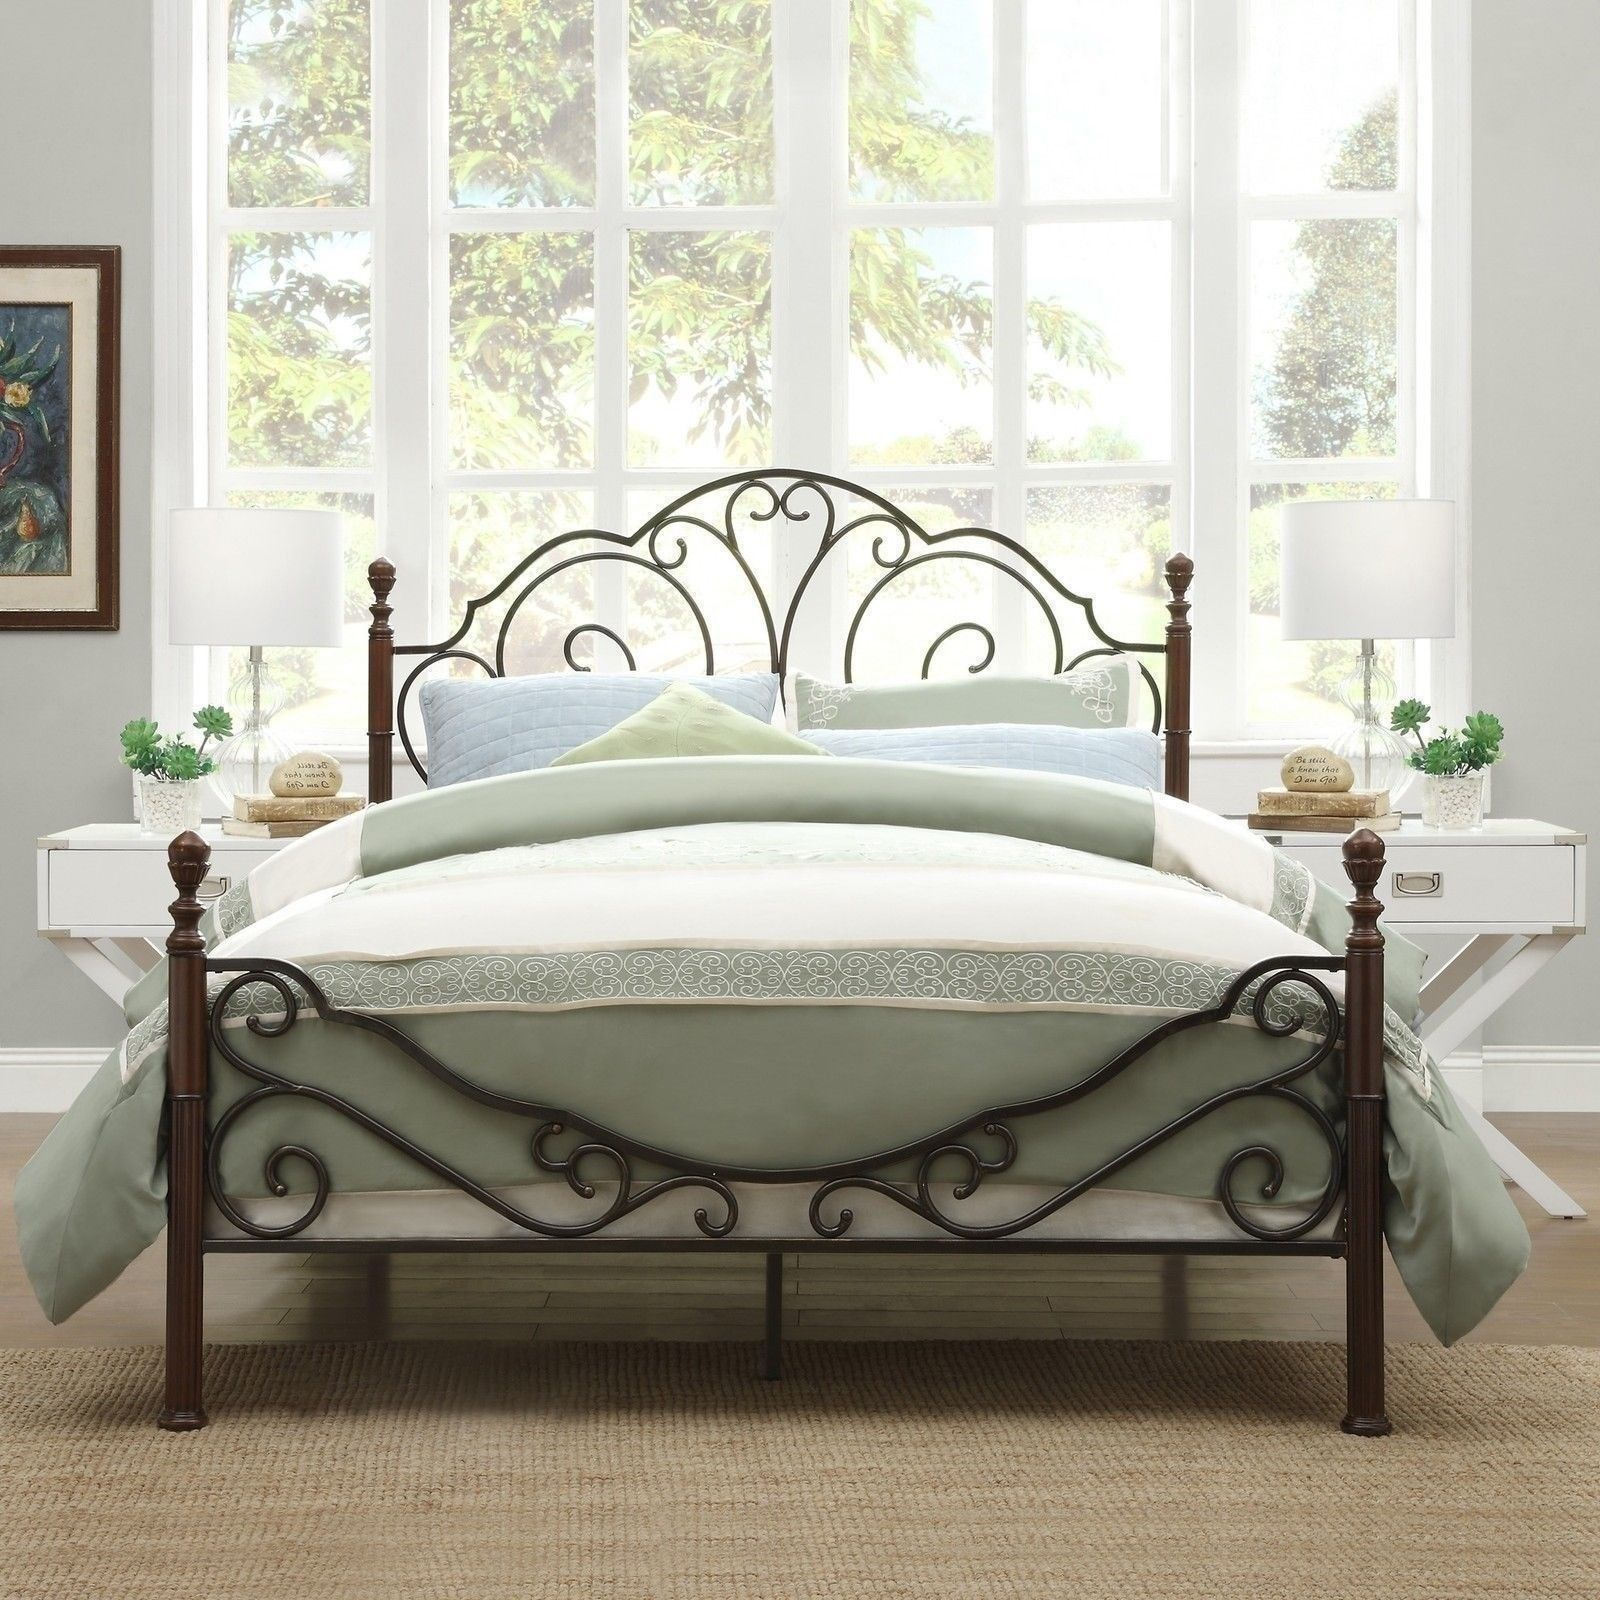 twin full queen king bronze metal wood four poster bed frame headboard footboard u2013 the clearance castle llc